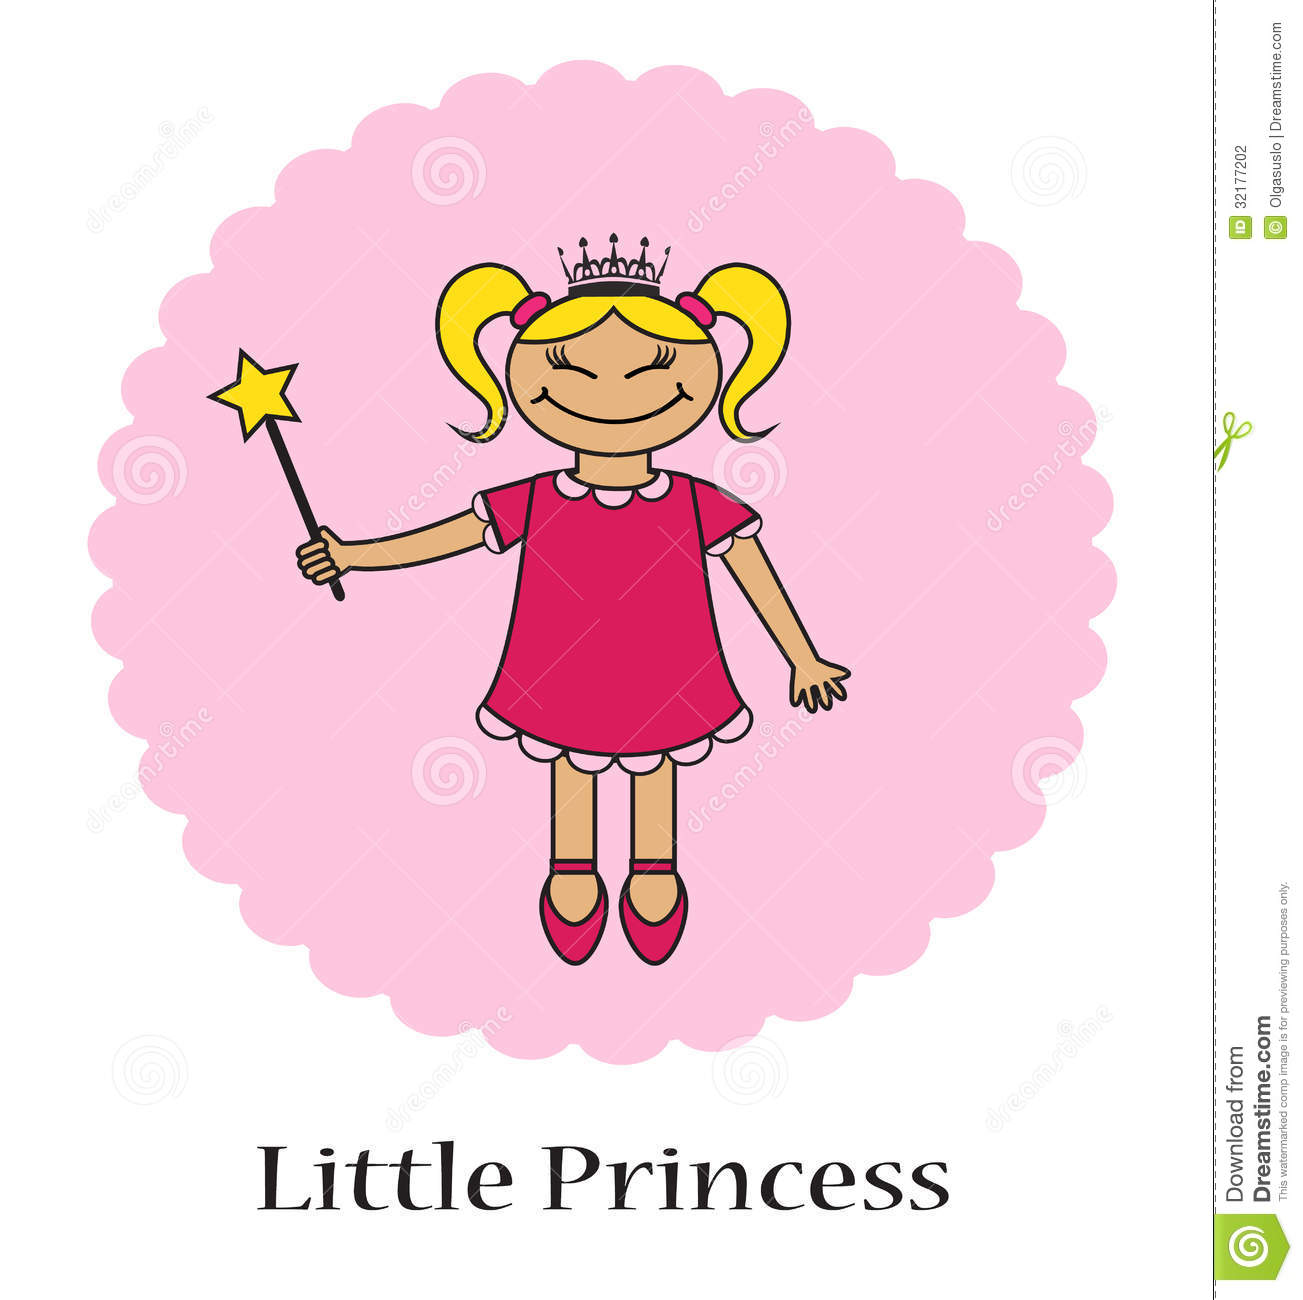 Https Www Dreamstime Com Stock Photography Little Princess Kartoon Magic Wand Pink Background Image32177202